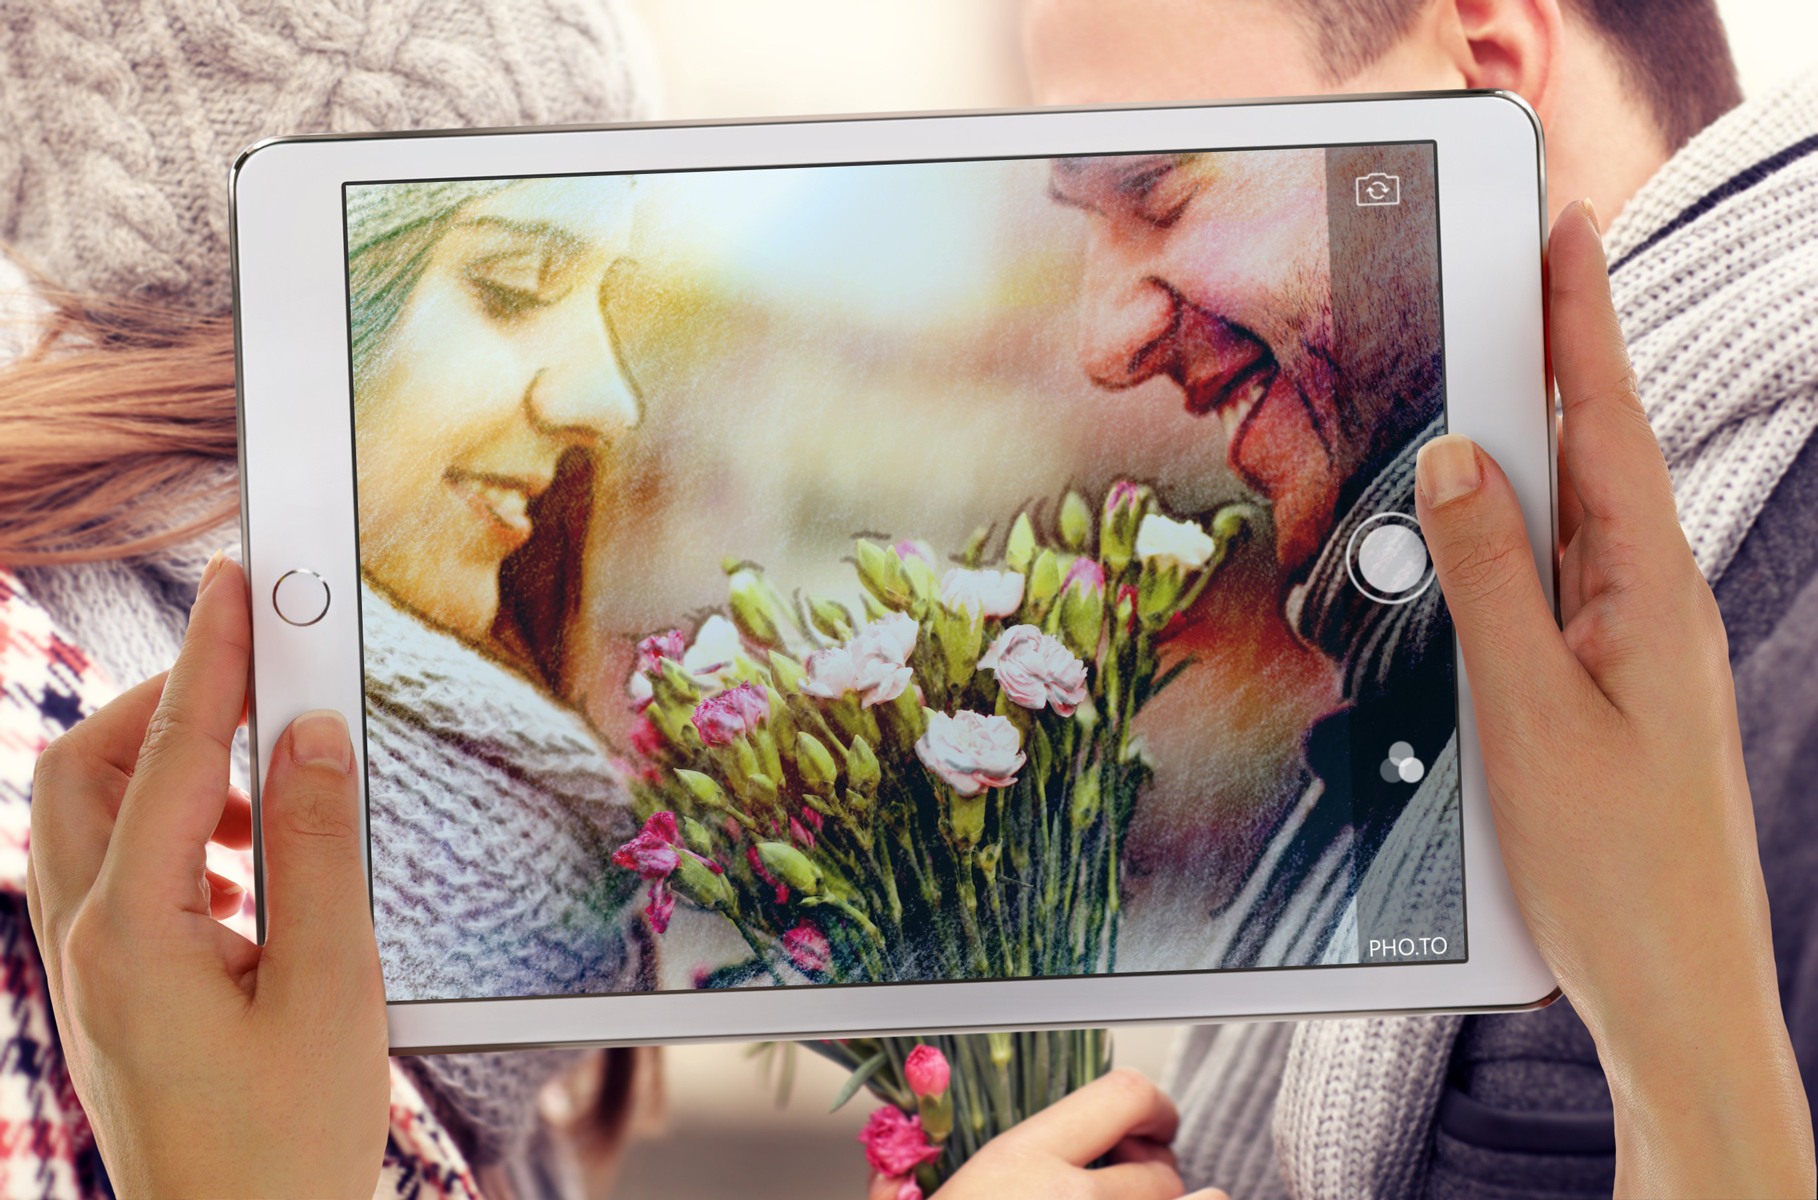 A beautiful drawing vs photography photo montage made with a photo of a happy couple.